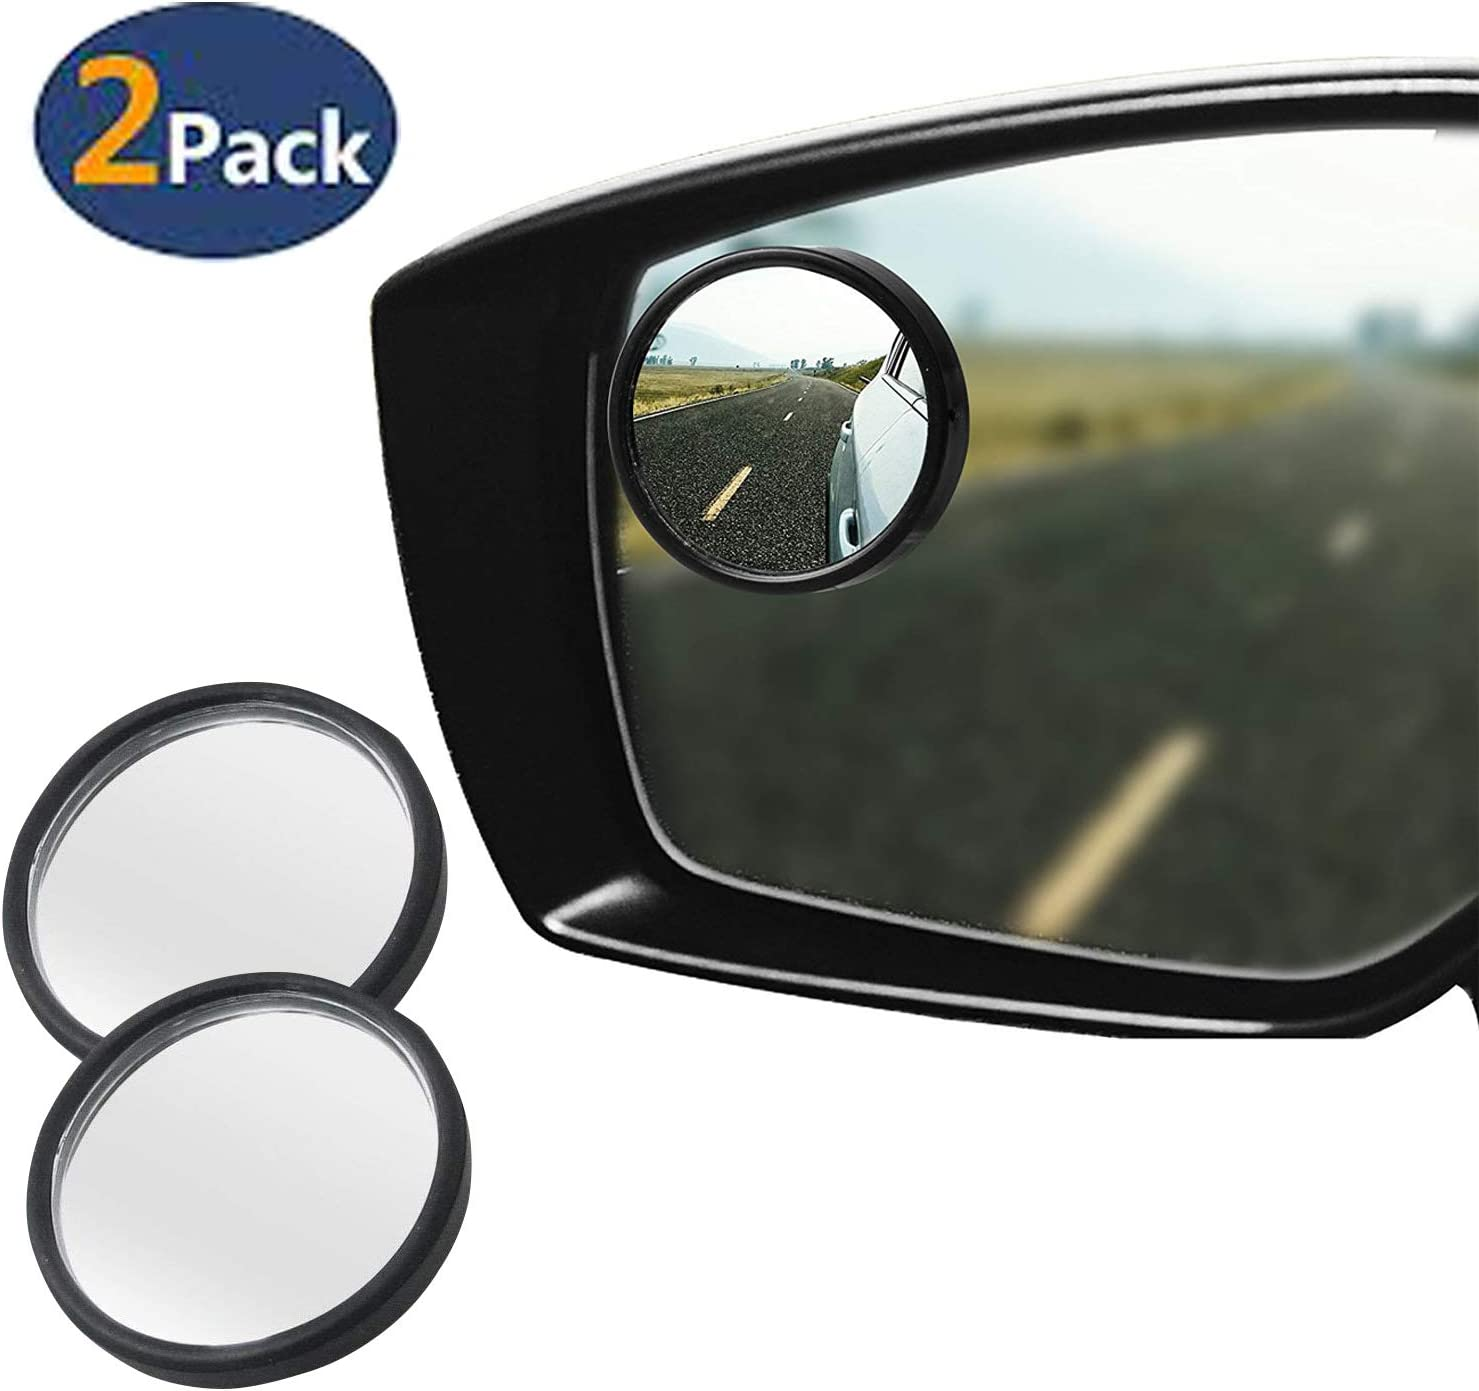 Pack of 2 MR1 Blind Spot Mirror for Car 2 Round Black Frame Waterproof HD Glass Convex Rear View Mirror Self-Adhesive for Car SUV Trucks and More